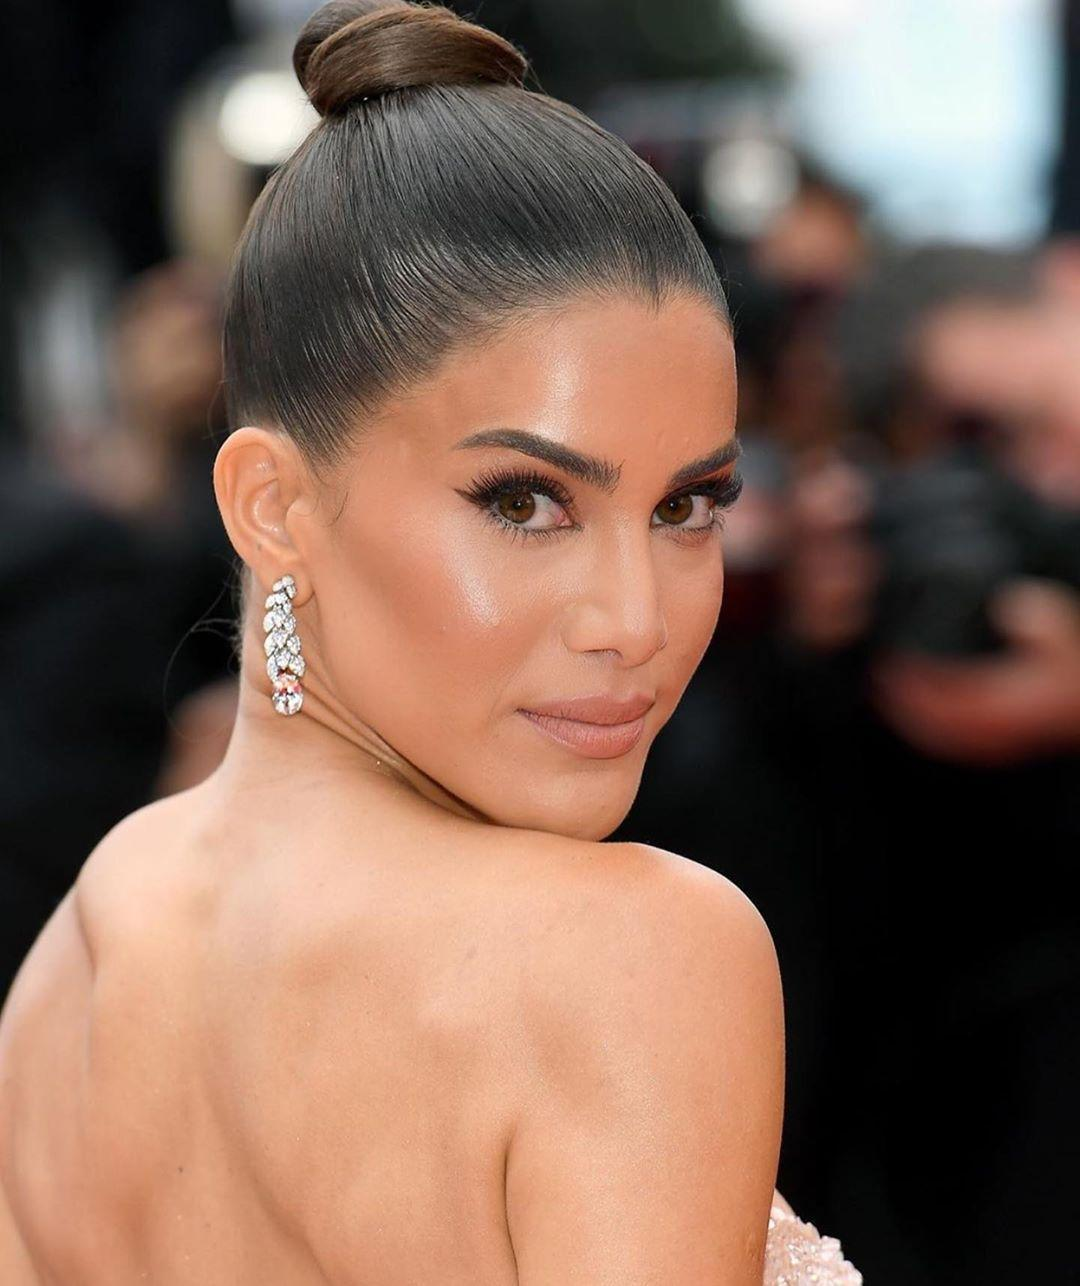 at Cannes 2019